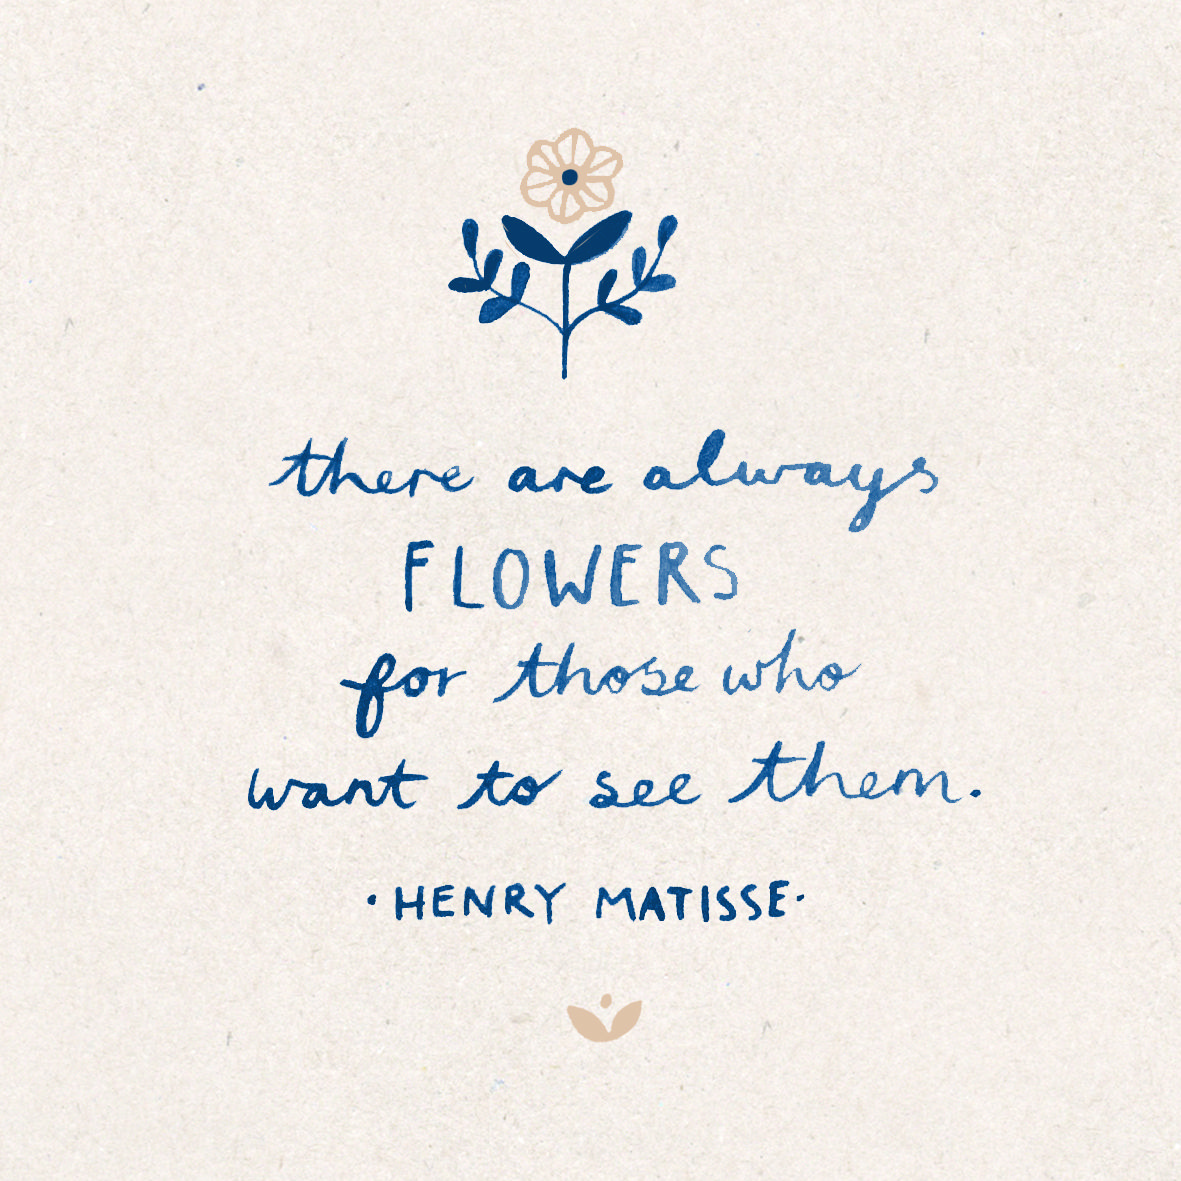 Motivational And Inspirational Quotes Pinterest: Girlscout // Matisse // Scoutshonour.co.uk